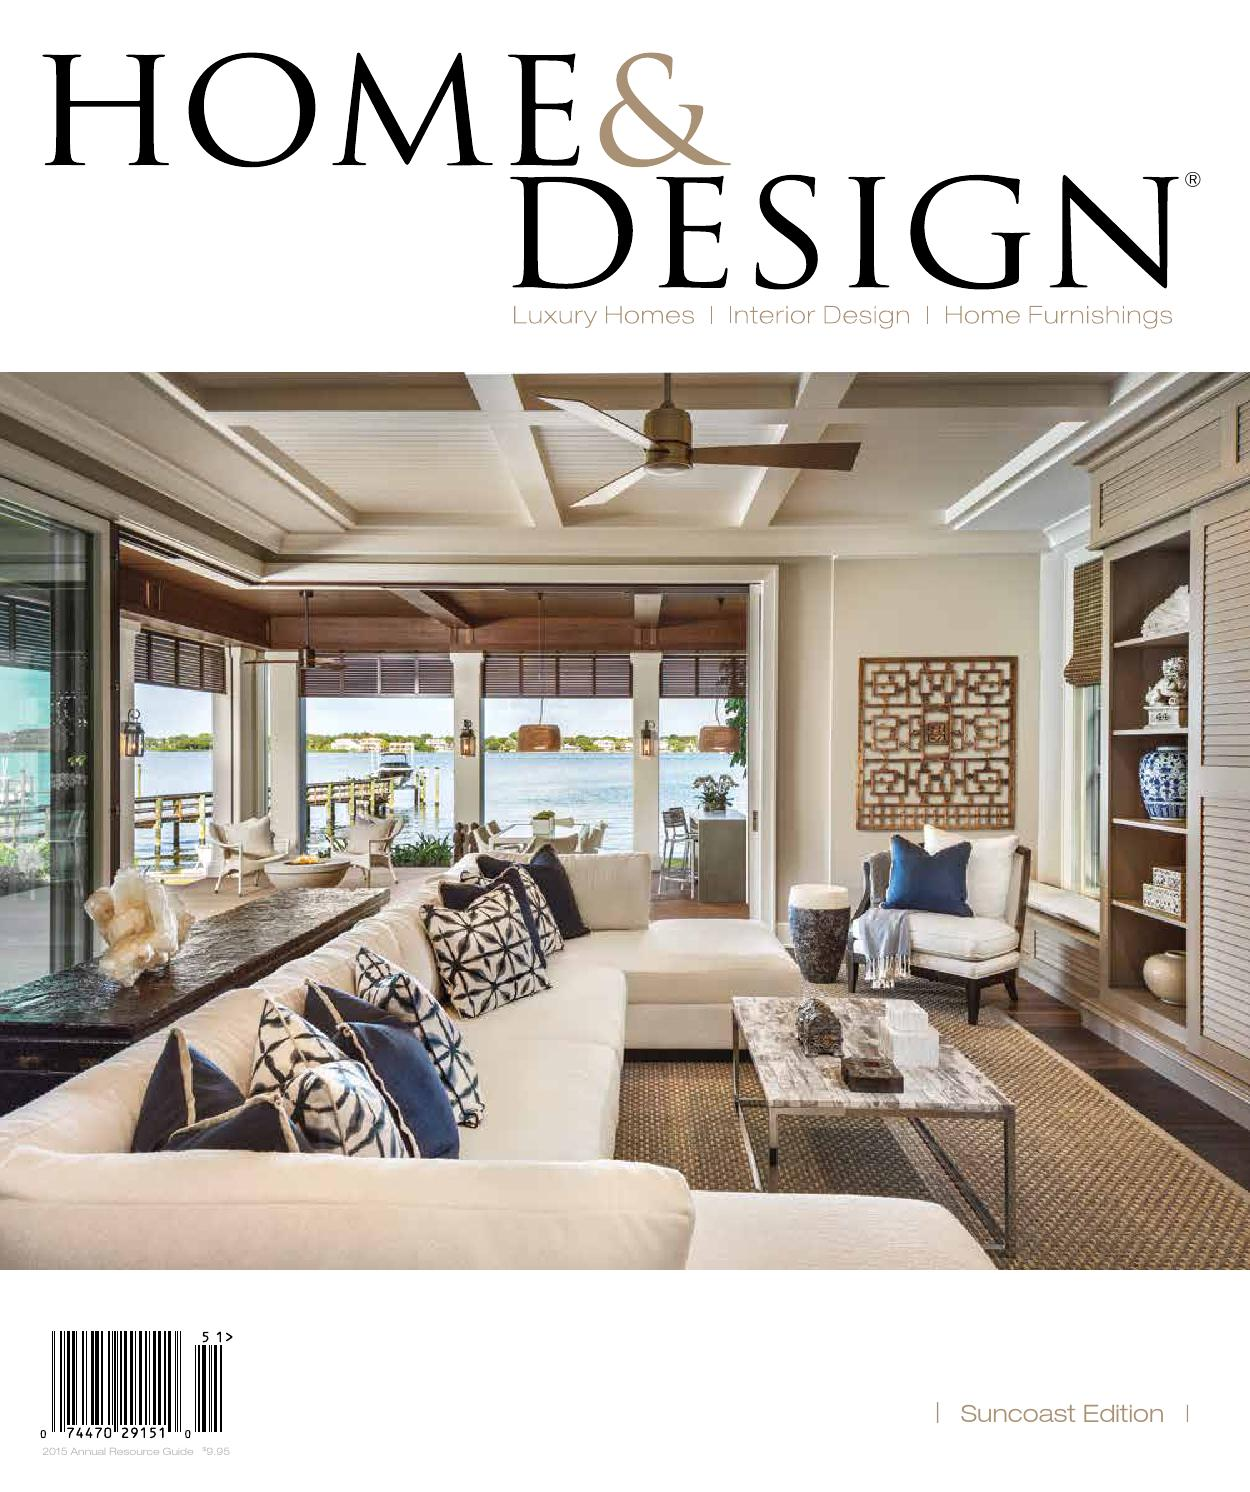 Home design magazine annual resource guide 2015 suncoast florida edition by anthony spano - Design house decor ...